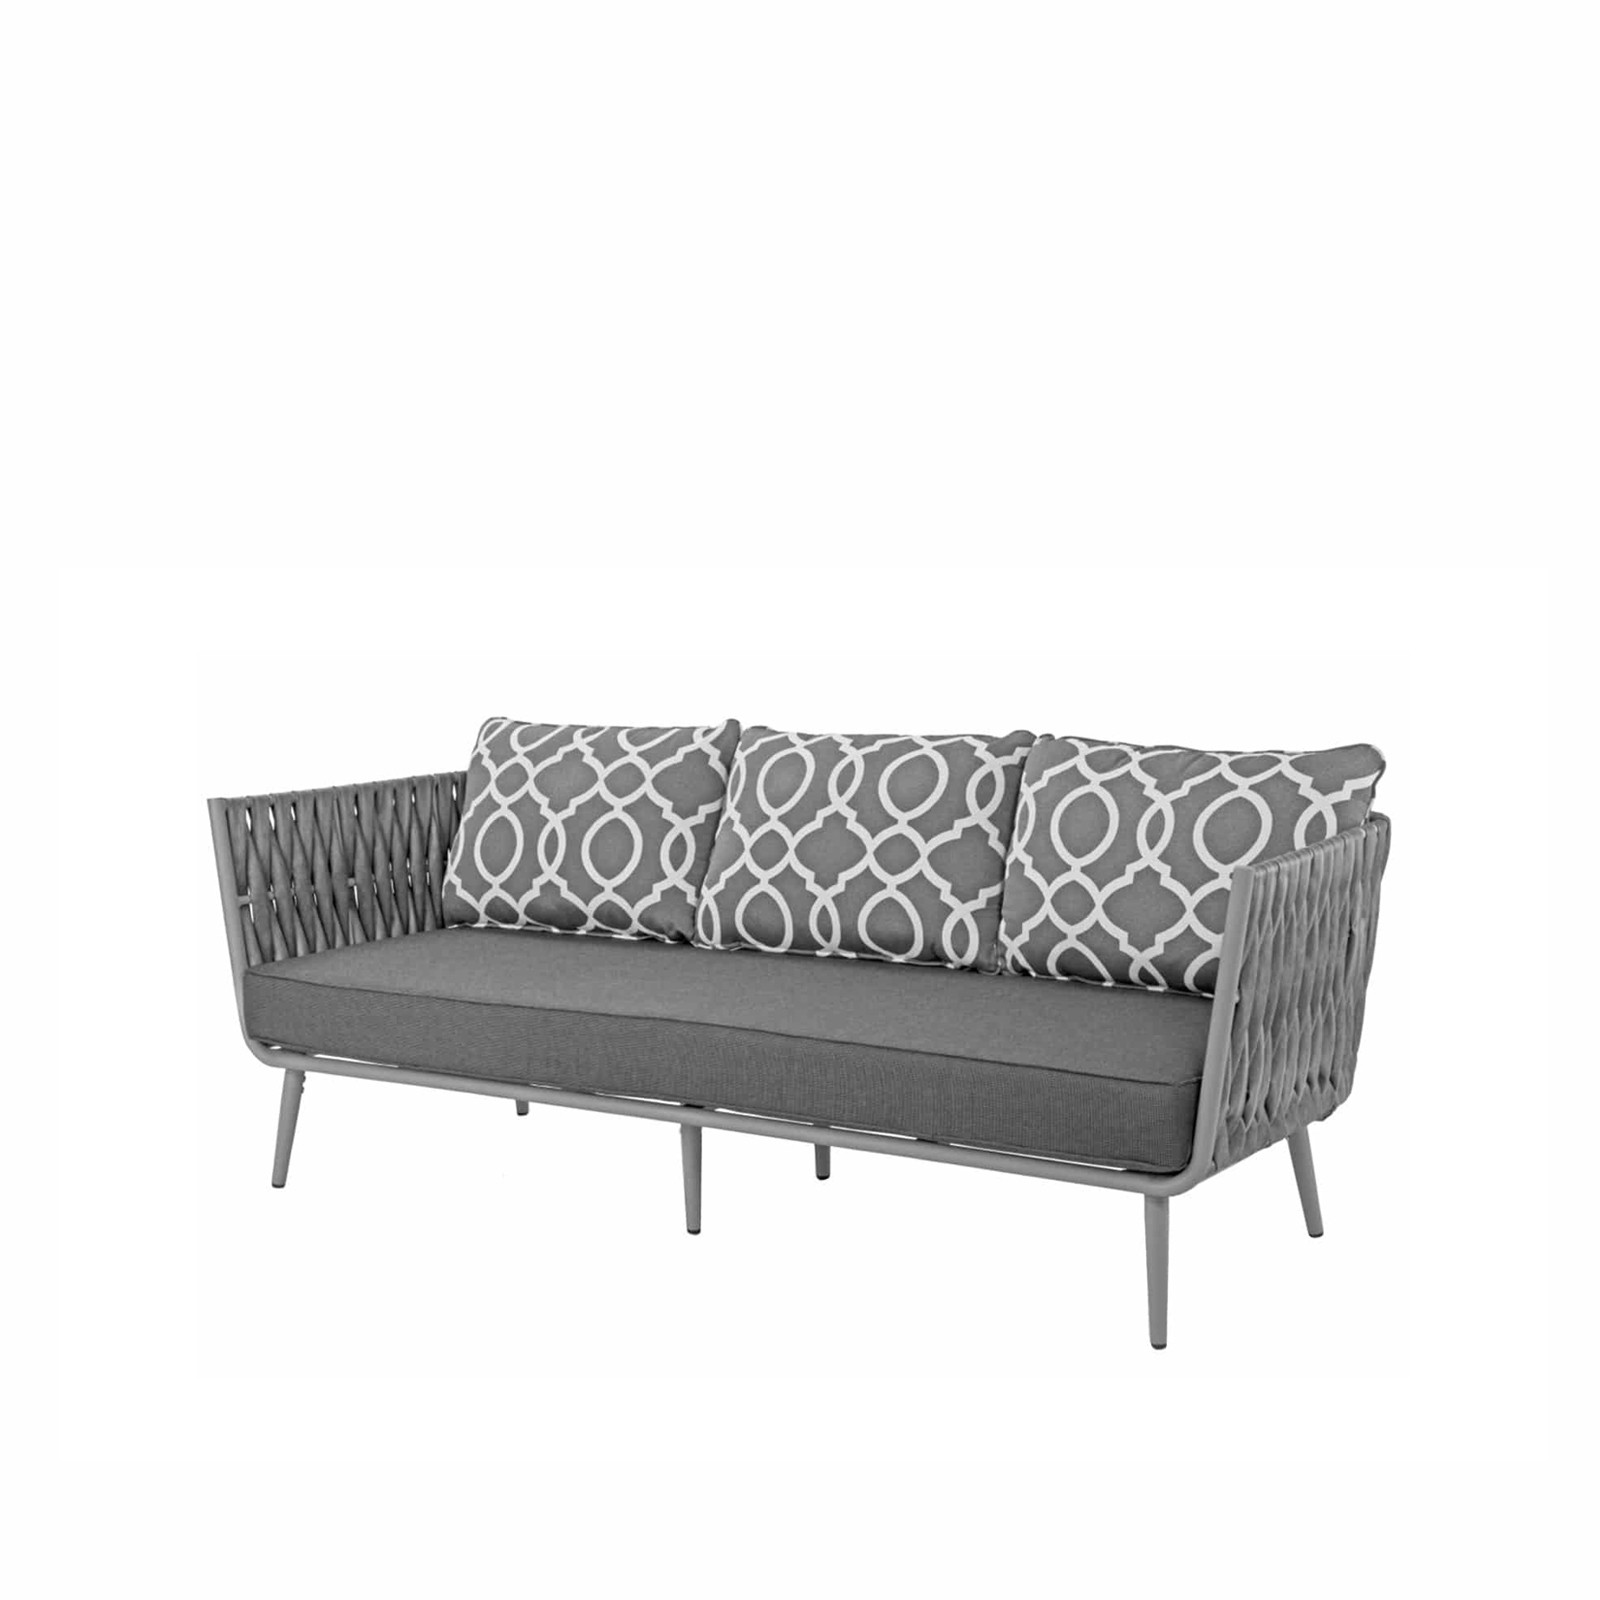 Outdoor Sofa Rattan Source Outdoor Aria Wicker Sofa